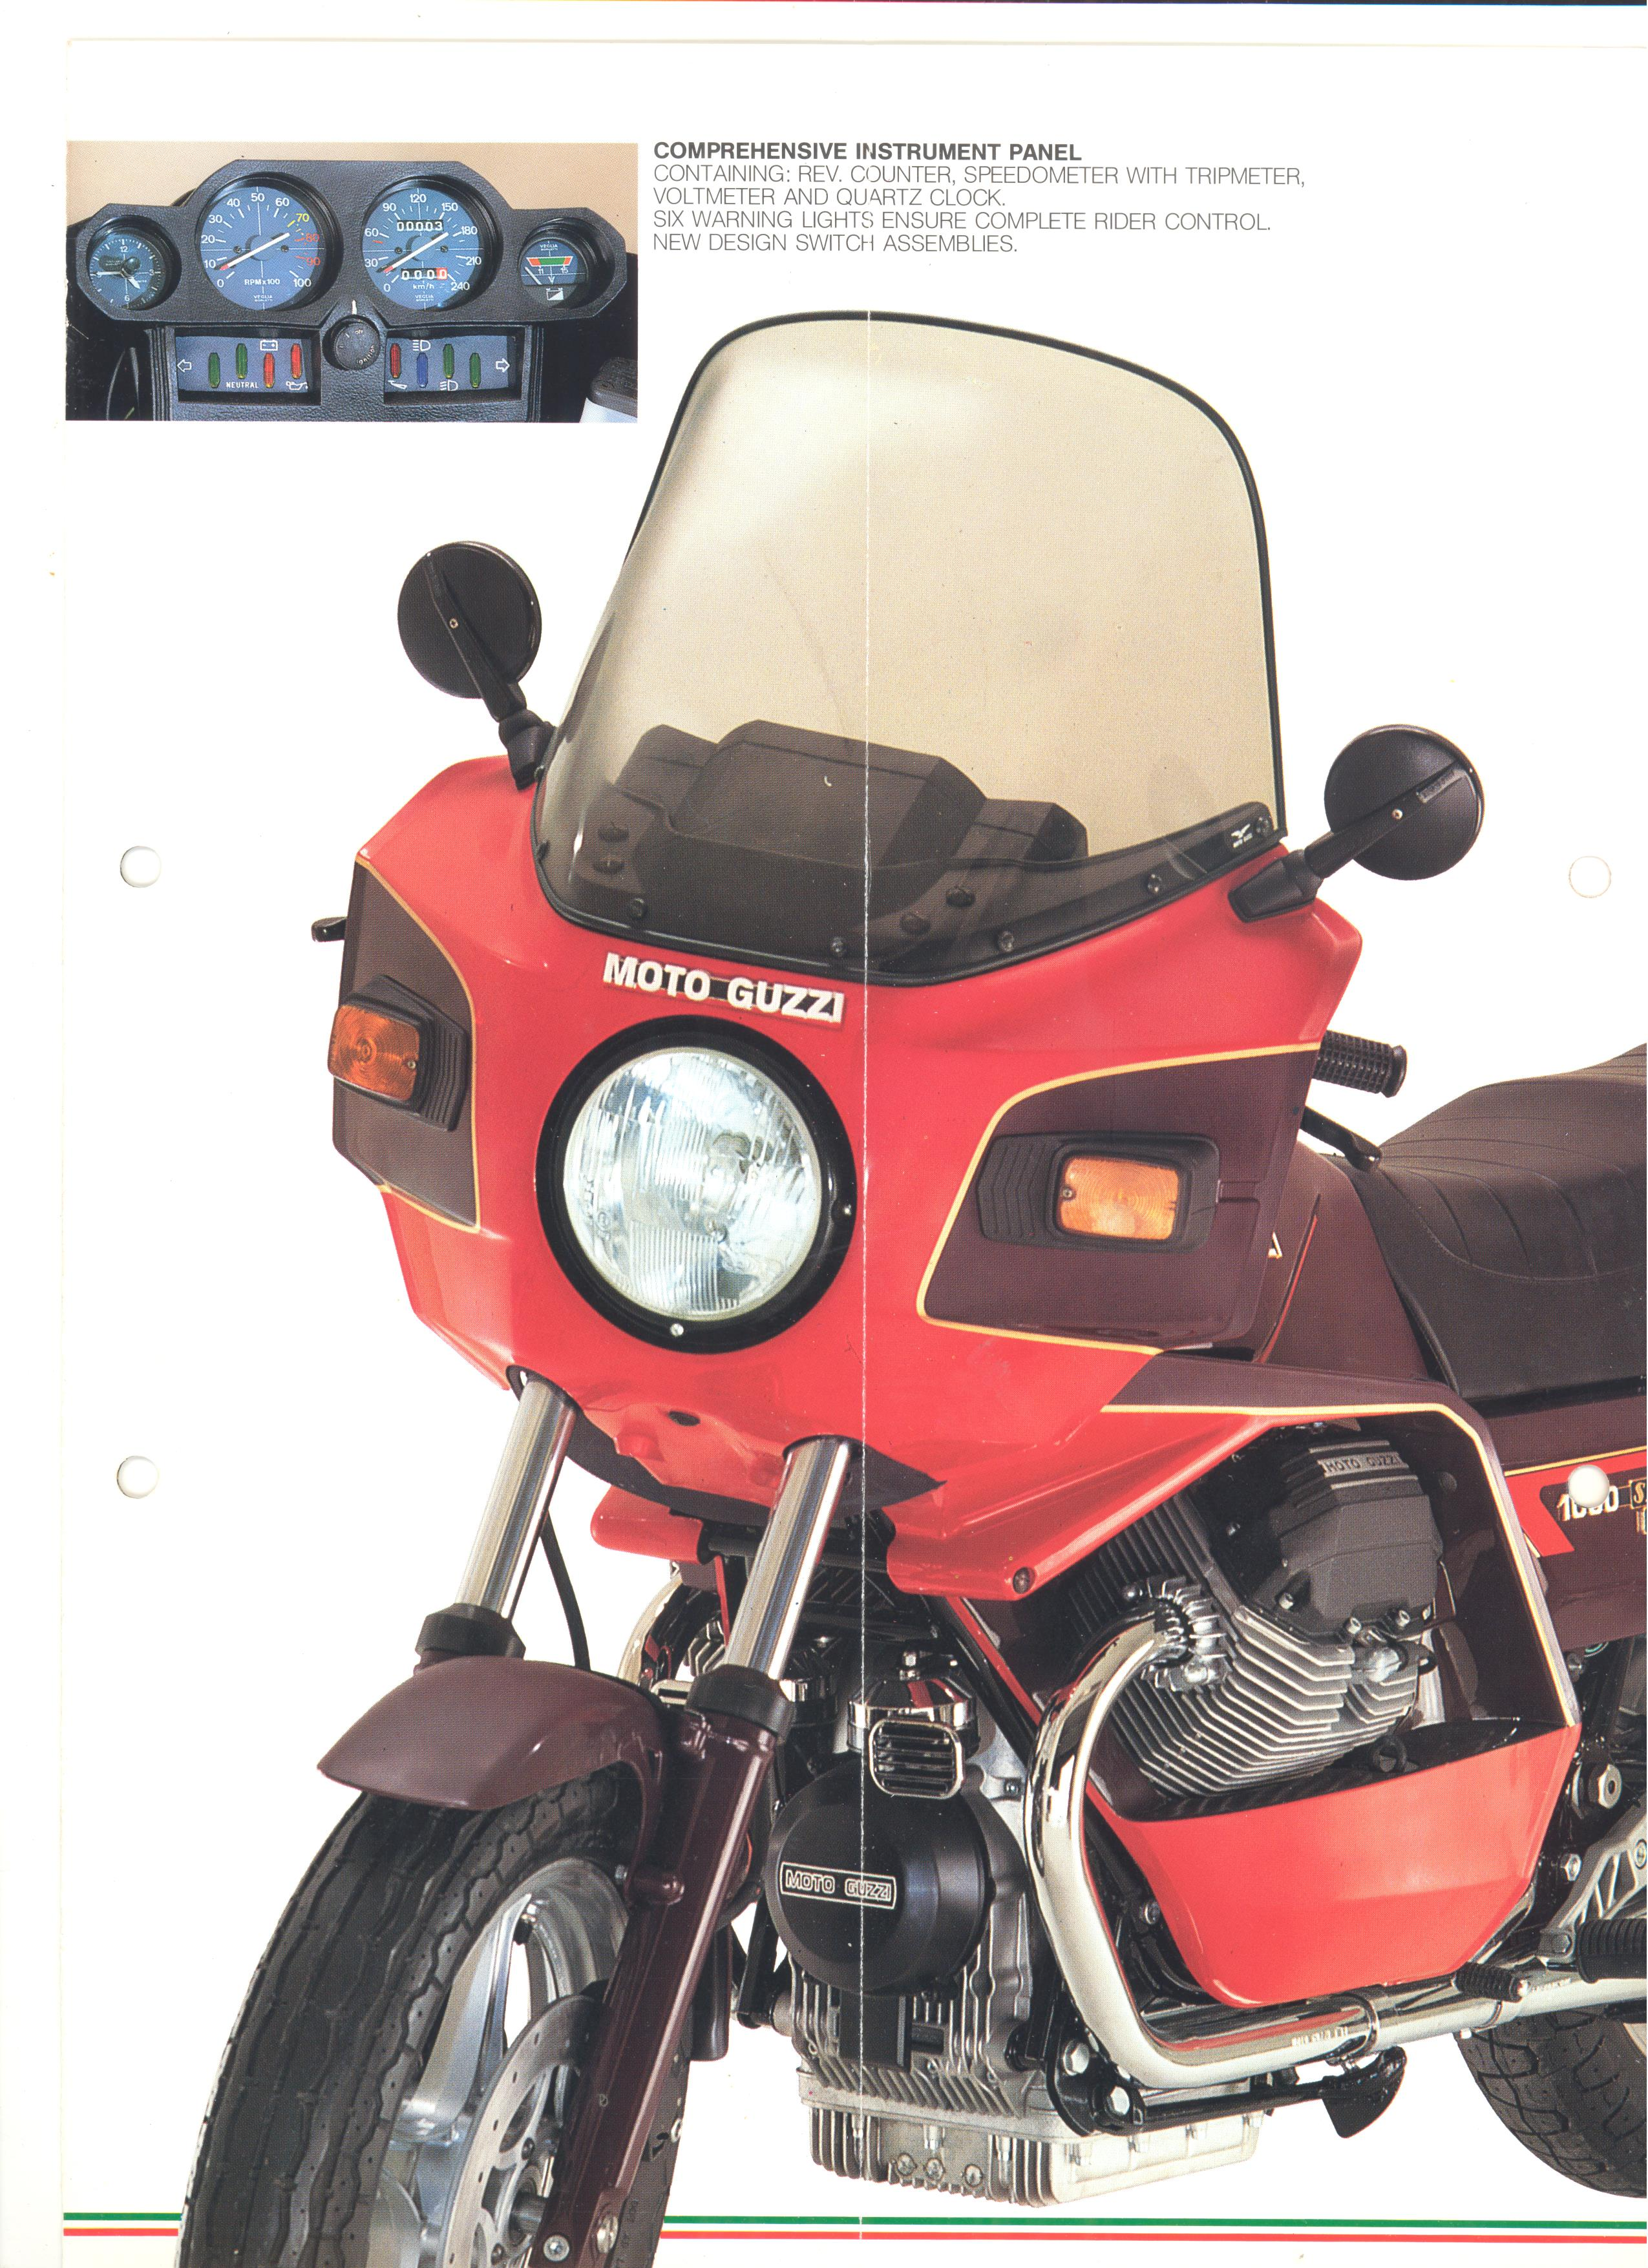 Moto Guzzi factory brochure: 1000 SP II